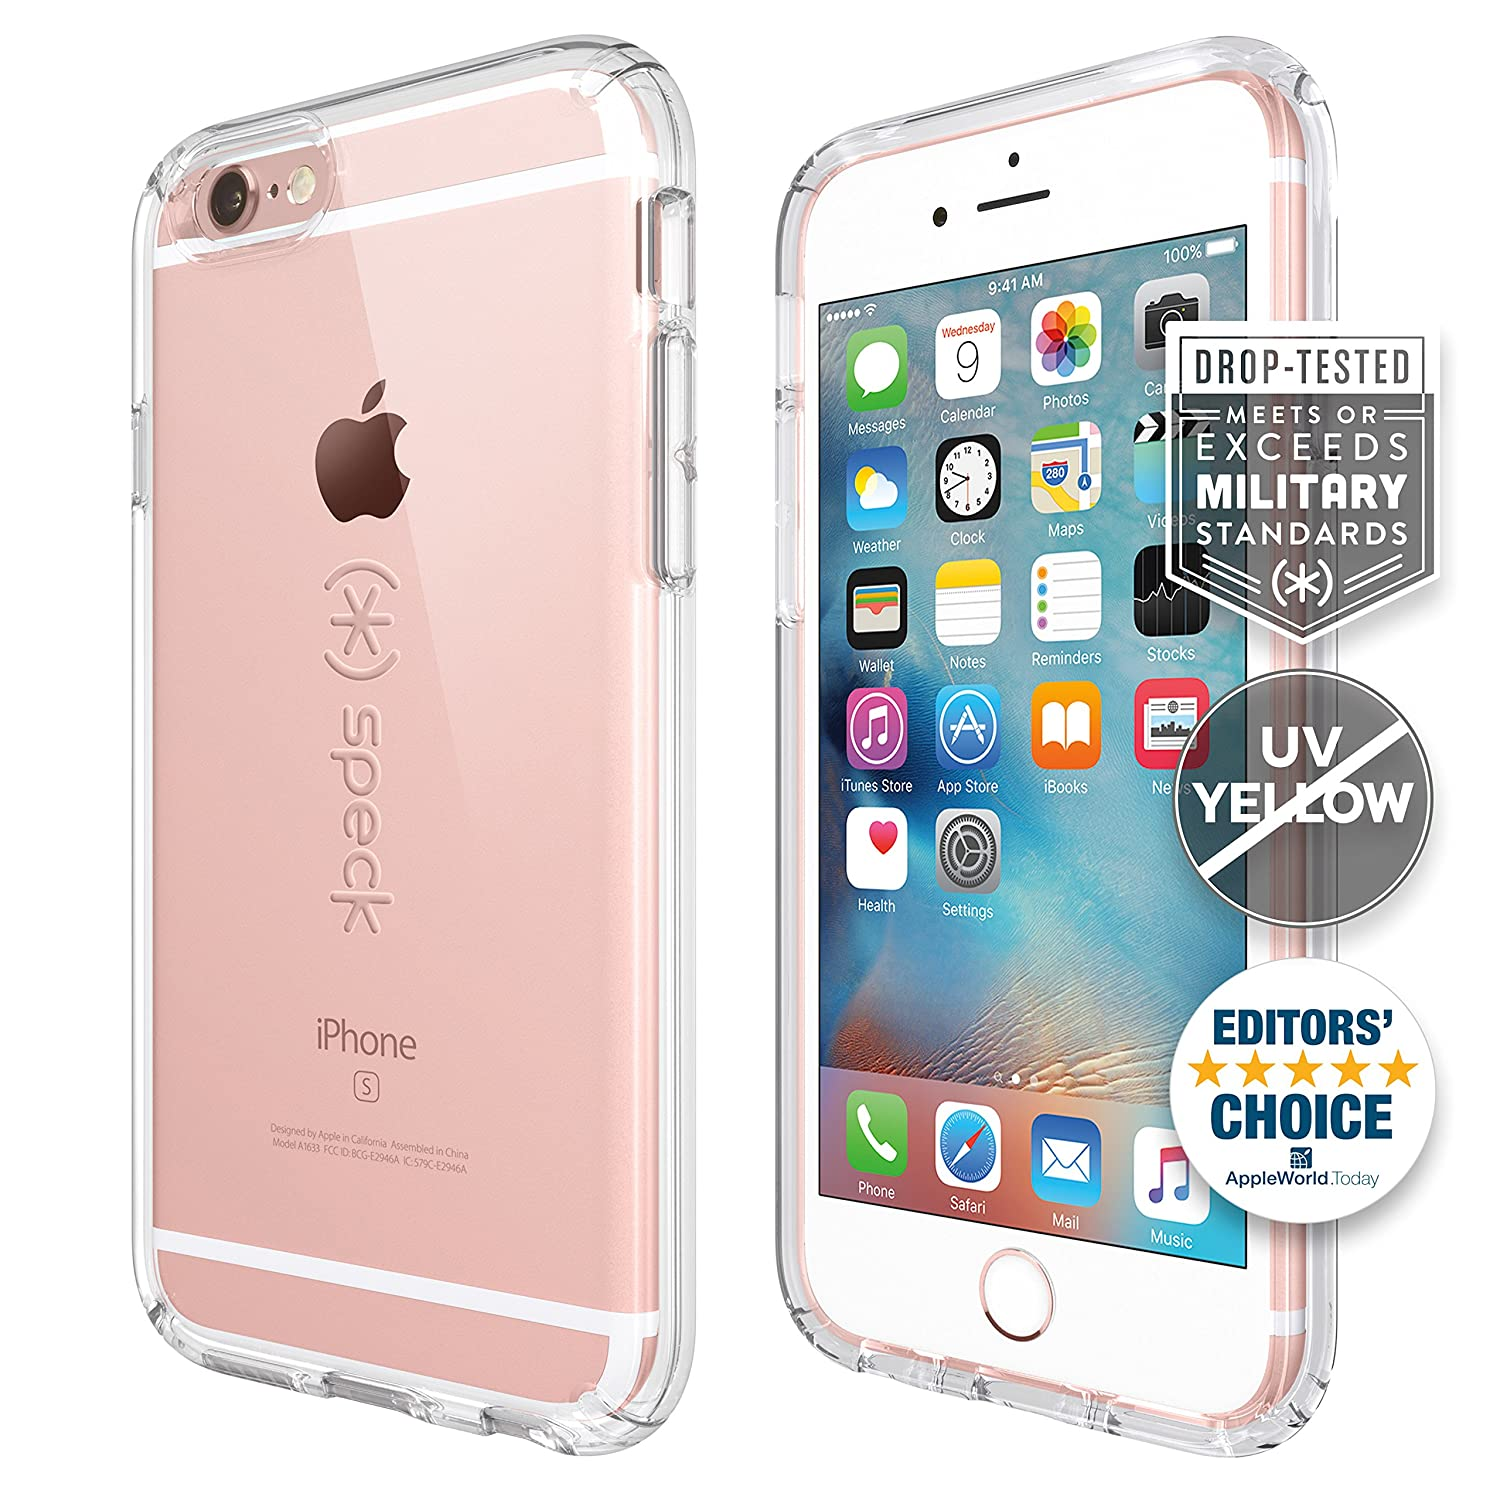 Speck Products Candyshell Case Iphone 6s Plus Hardcase Anti Shock Caseology Vanvo 6 Black Clear Cell Phones Accessories